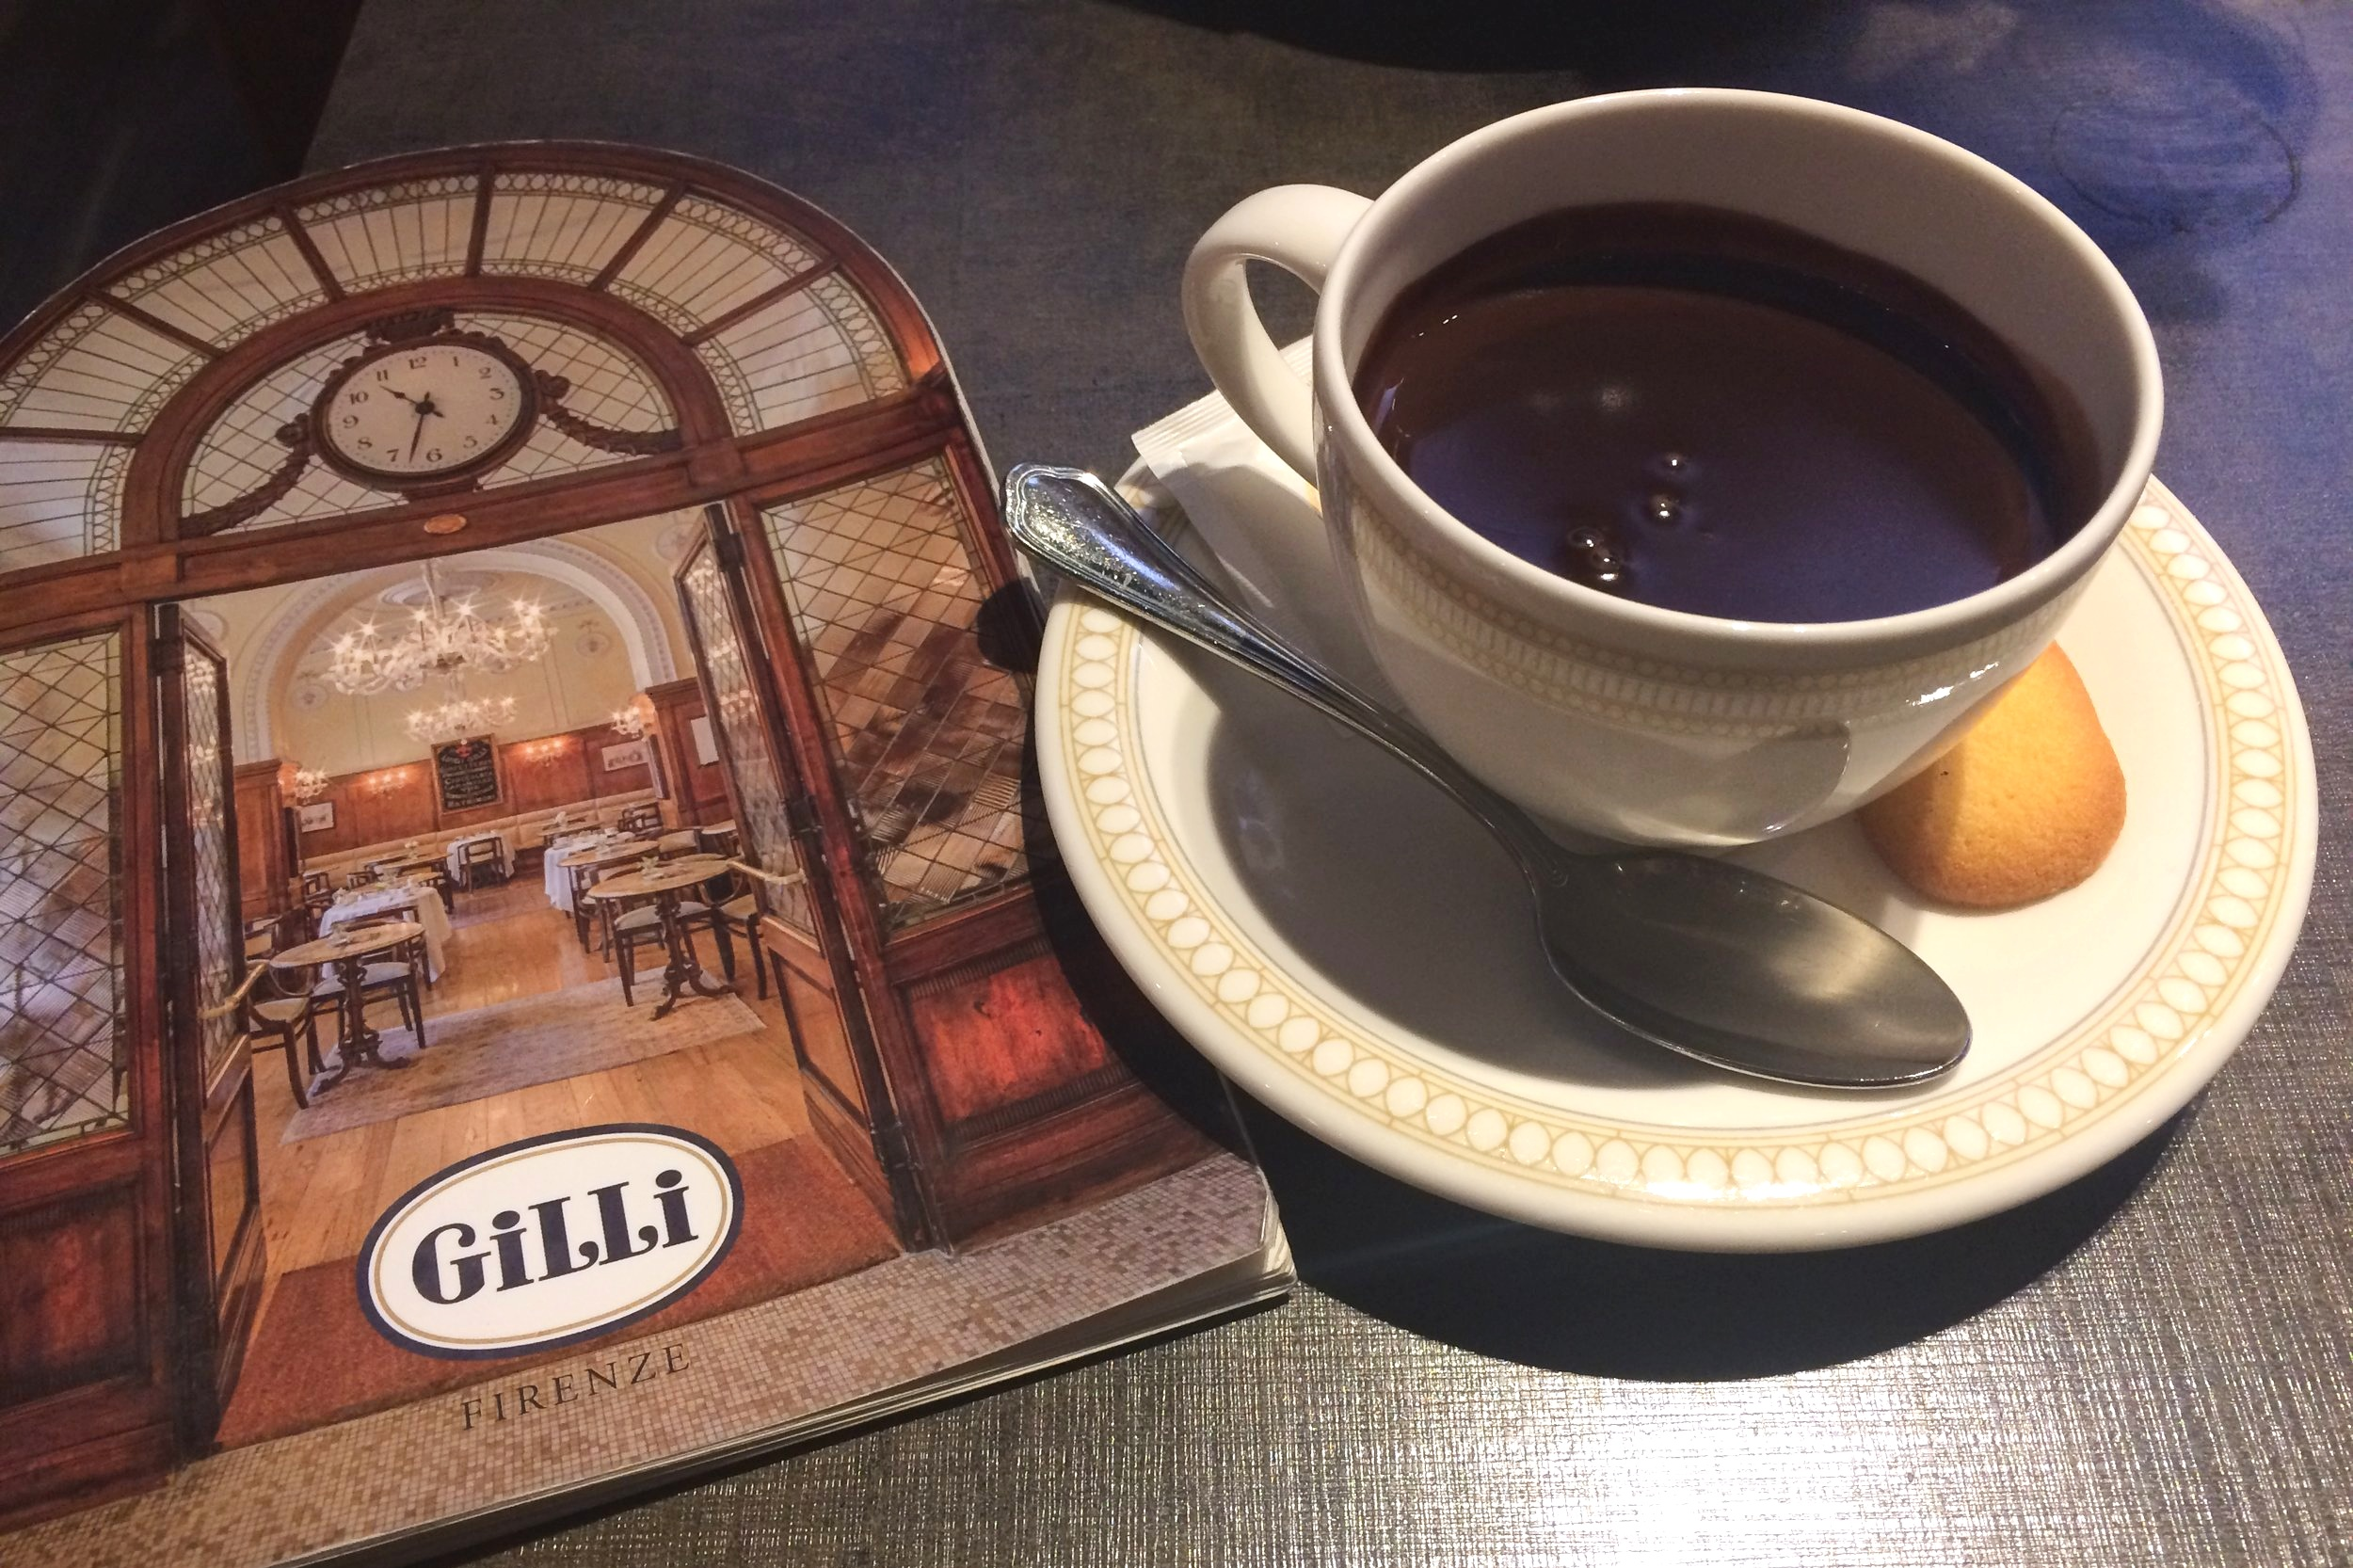 The famed hot chocolate at Caffè Gilli